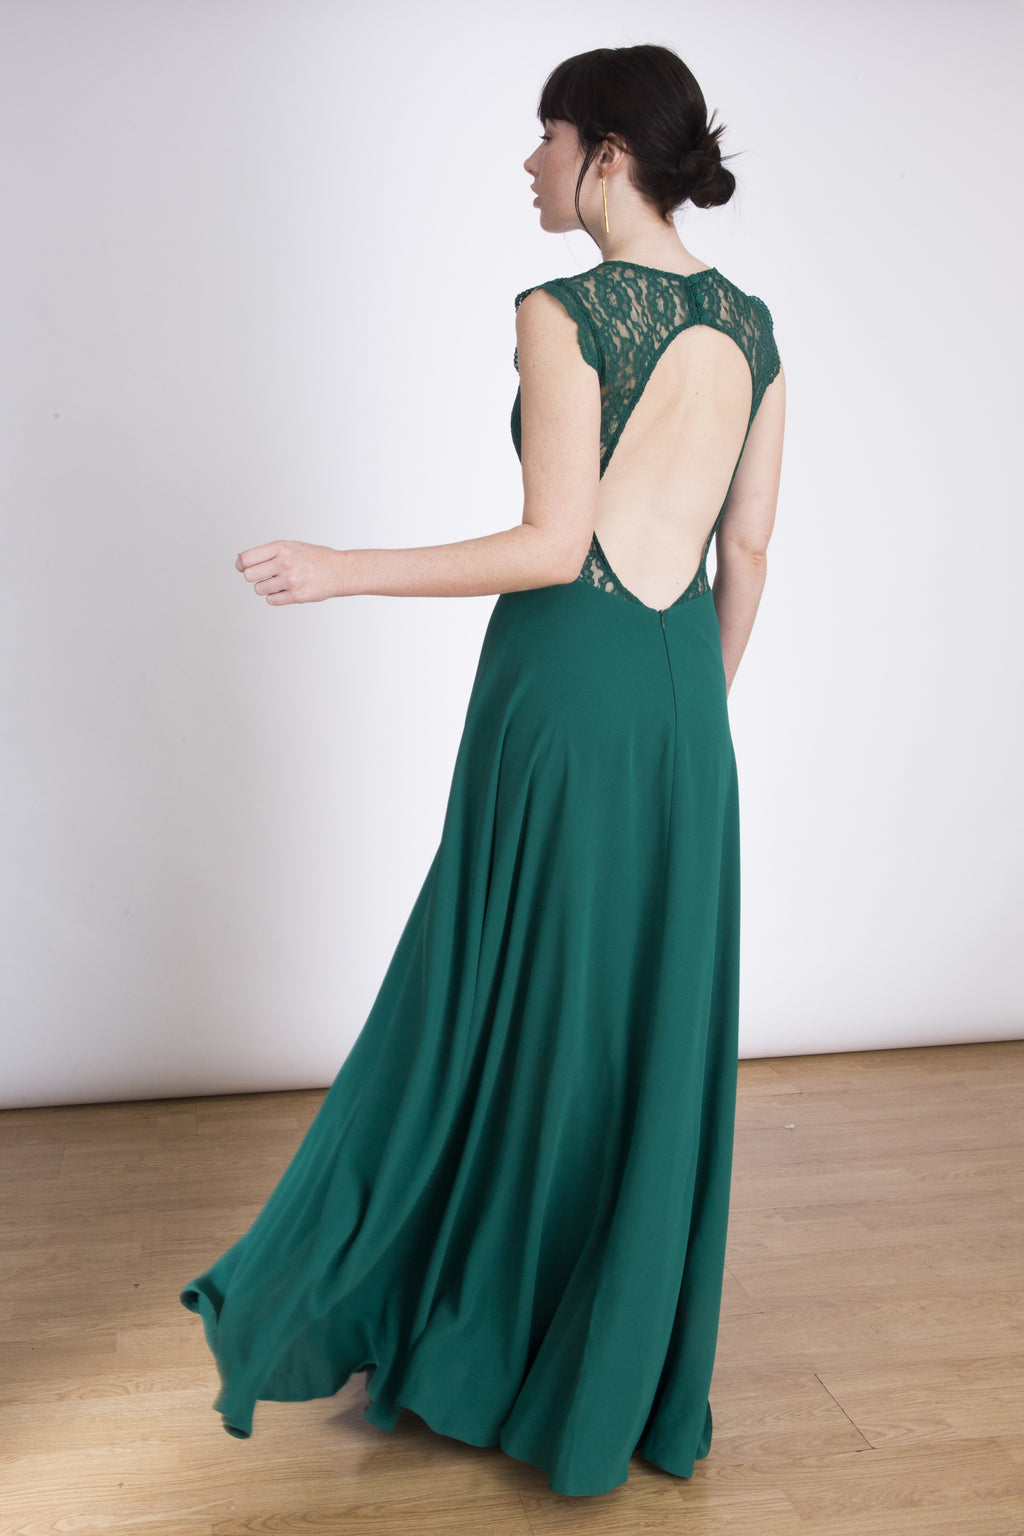 The Emma Maxi dress -  Open back lace maxi dress – Emerald Green. Lauren Lynn London Dress, Open back Lace Maxi dress, Top lace maxi dress, green lace maxi dress,  Lace top maxi dress with open back, wedding guest dress, maxi vestido, vestido largo para bodas, invitada perfecta, vestido largo de encaje para invitadas boda, maxi vestido de encaje, vestidos para ocasiones especiales